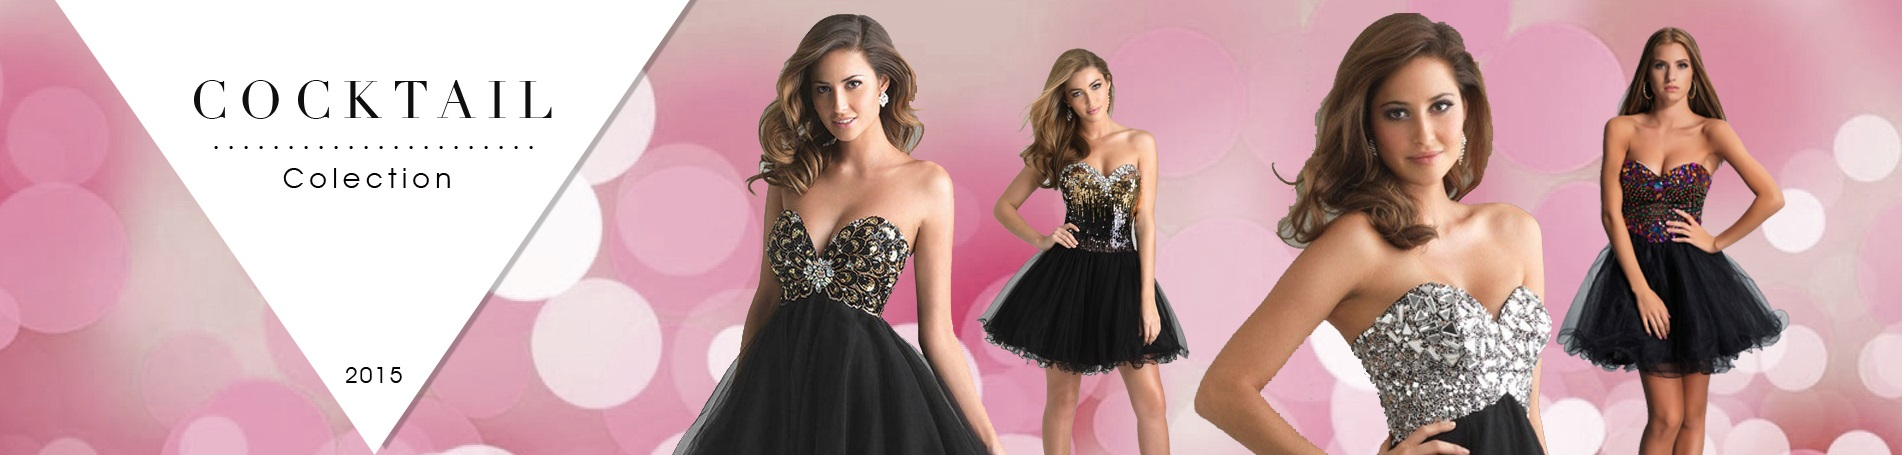 Cocktail Dresses Collection 2015